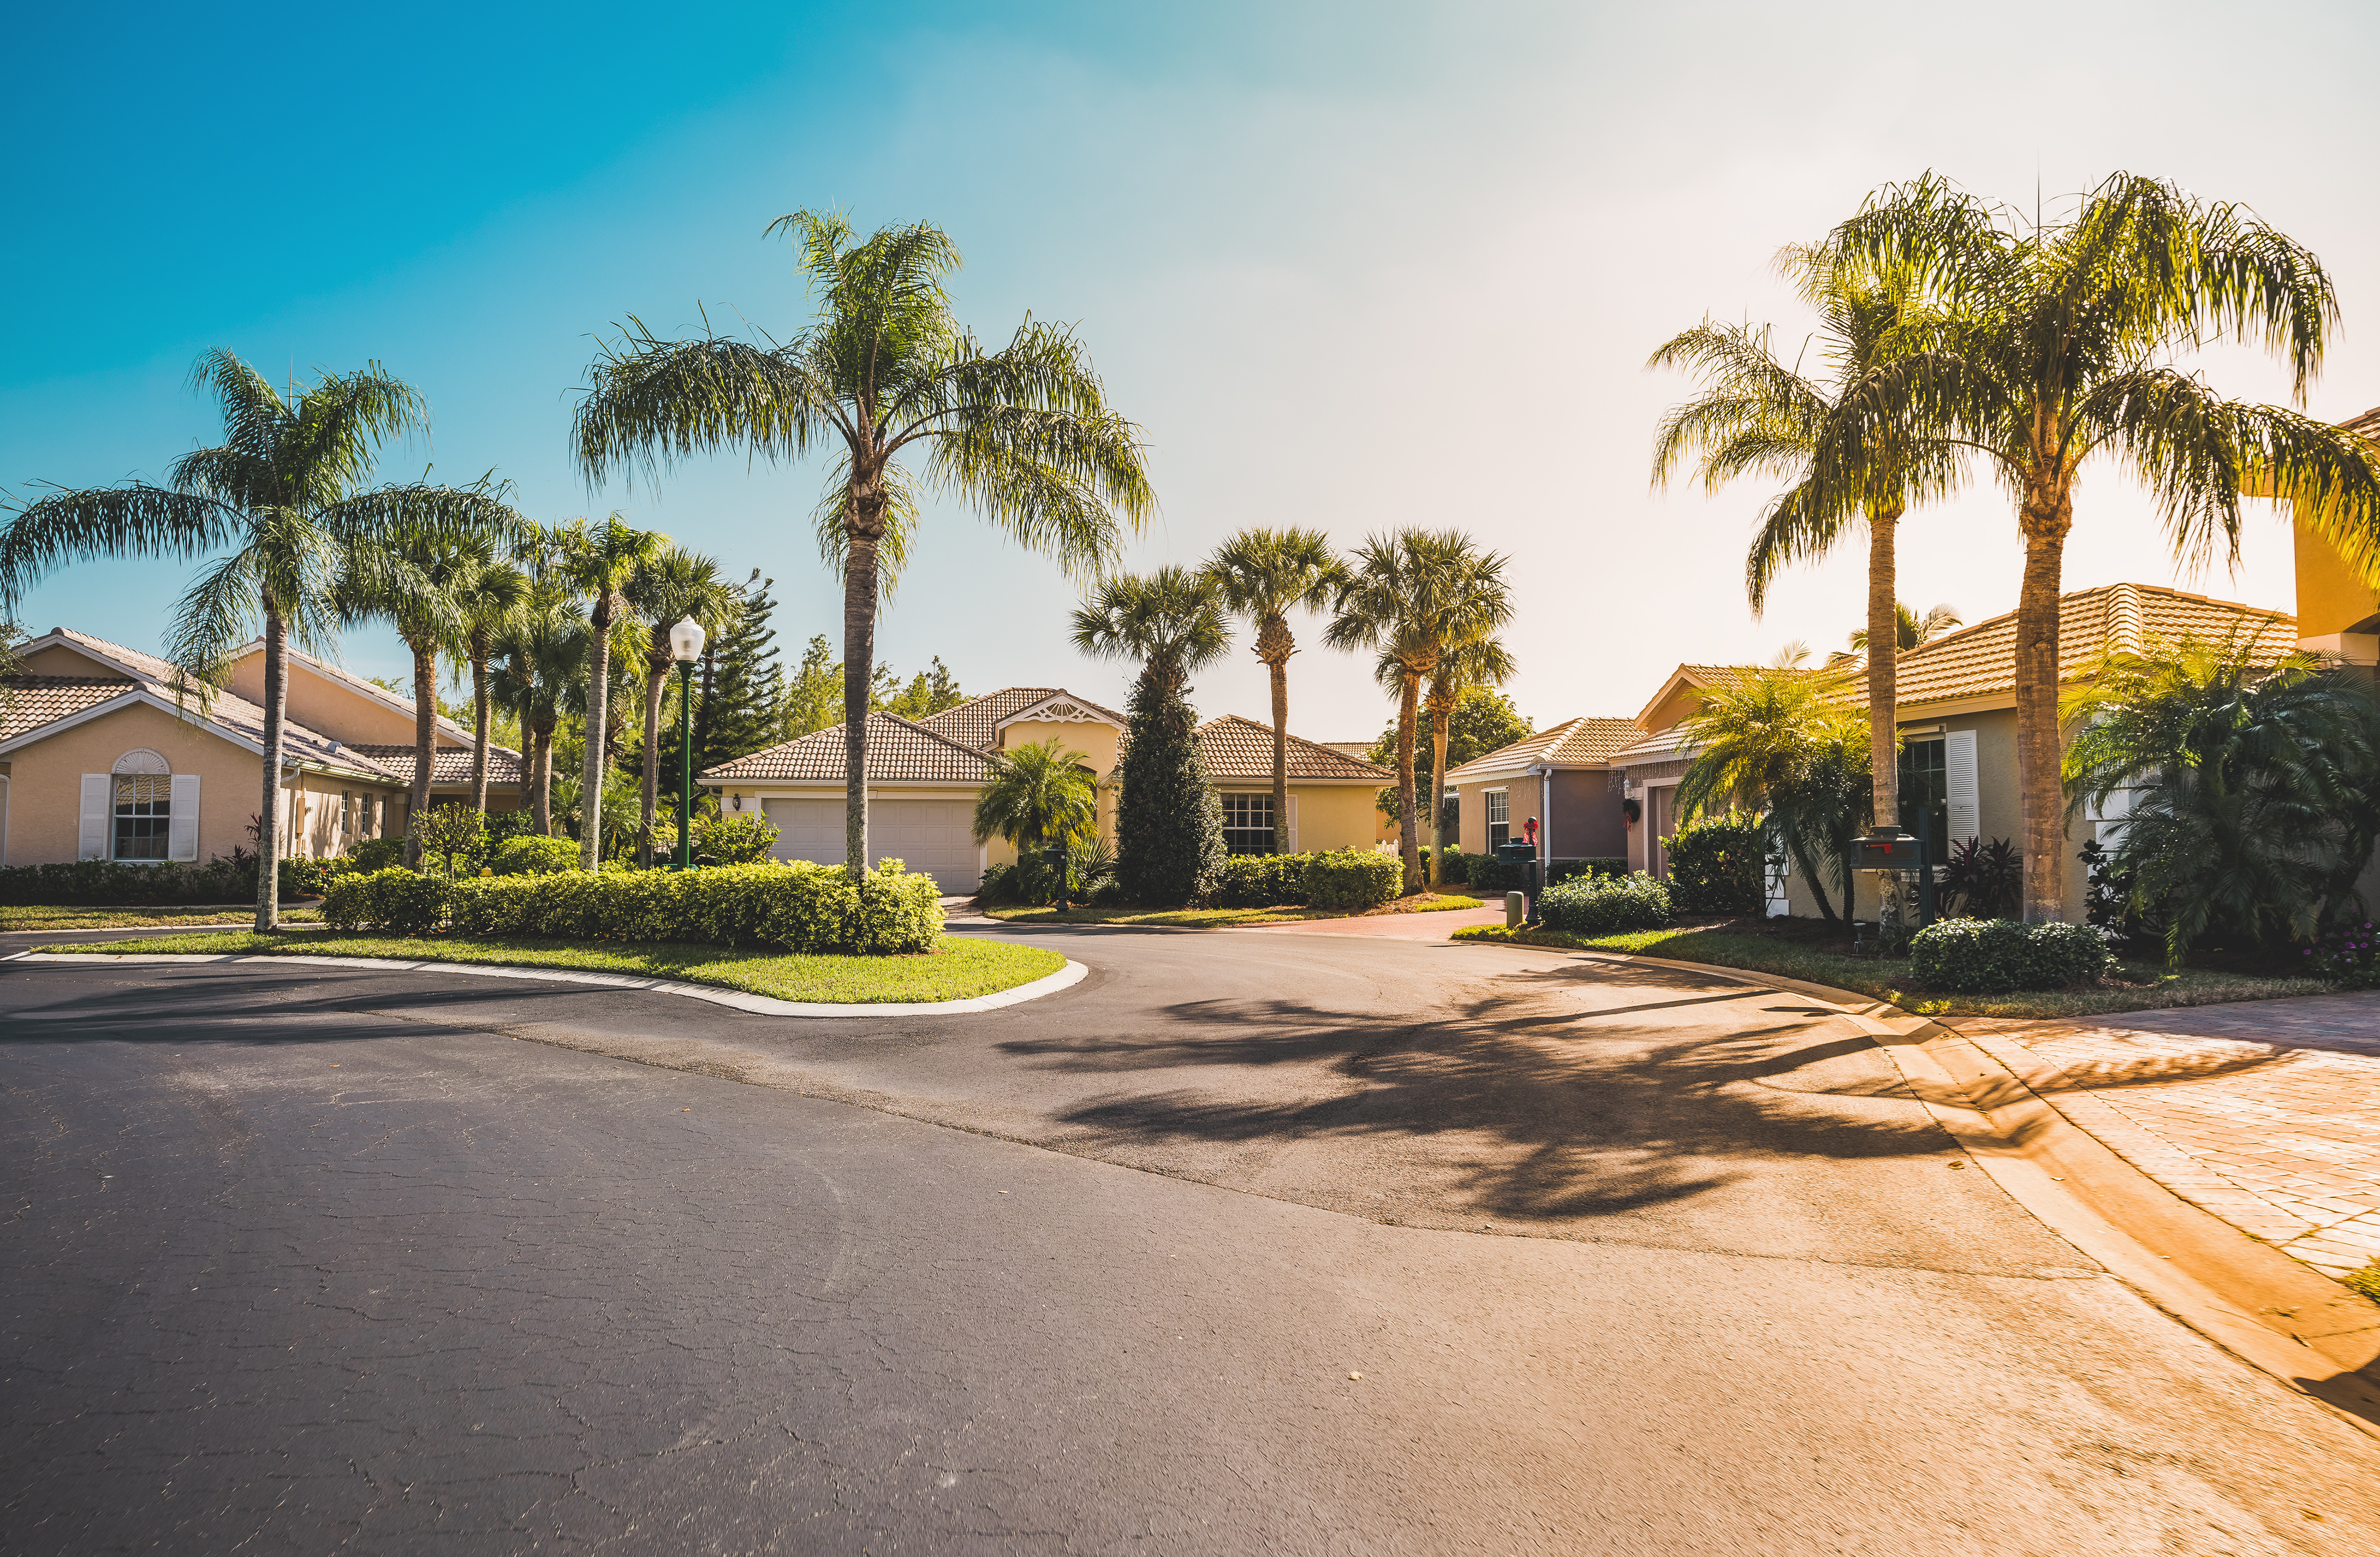 Top Three Reasons to Invest in Florida